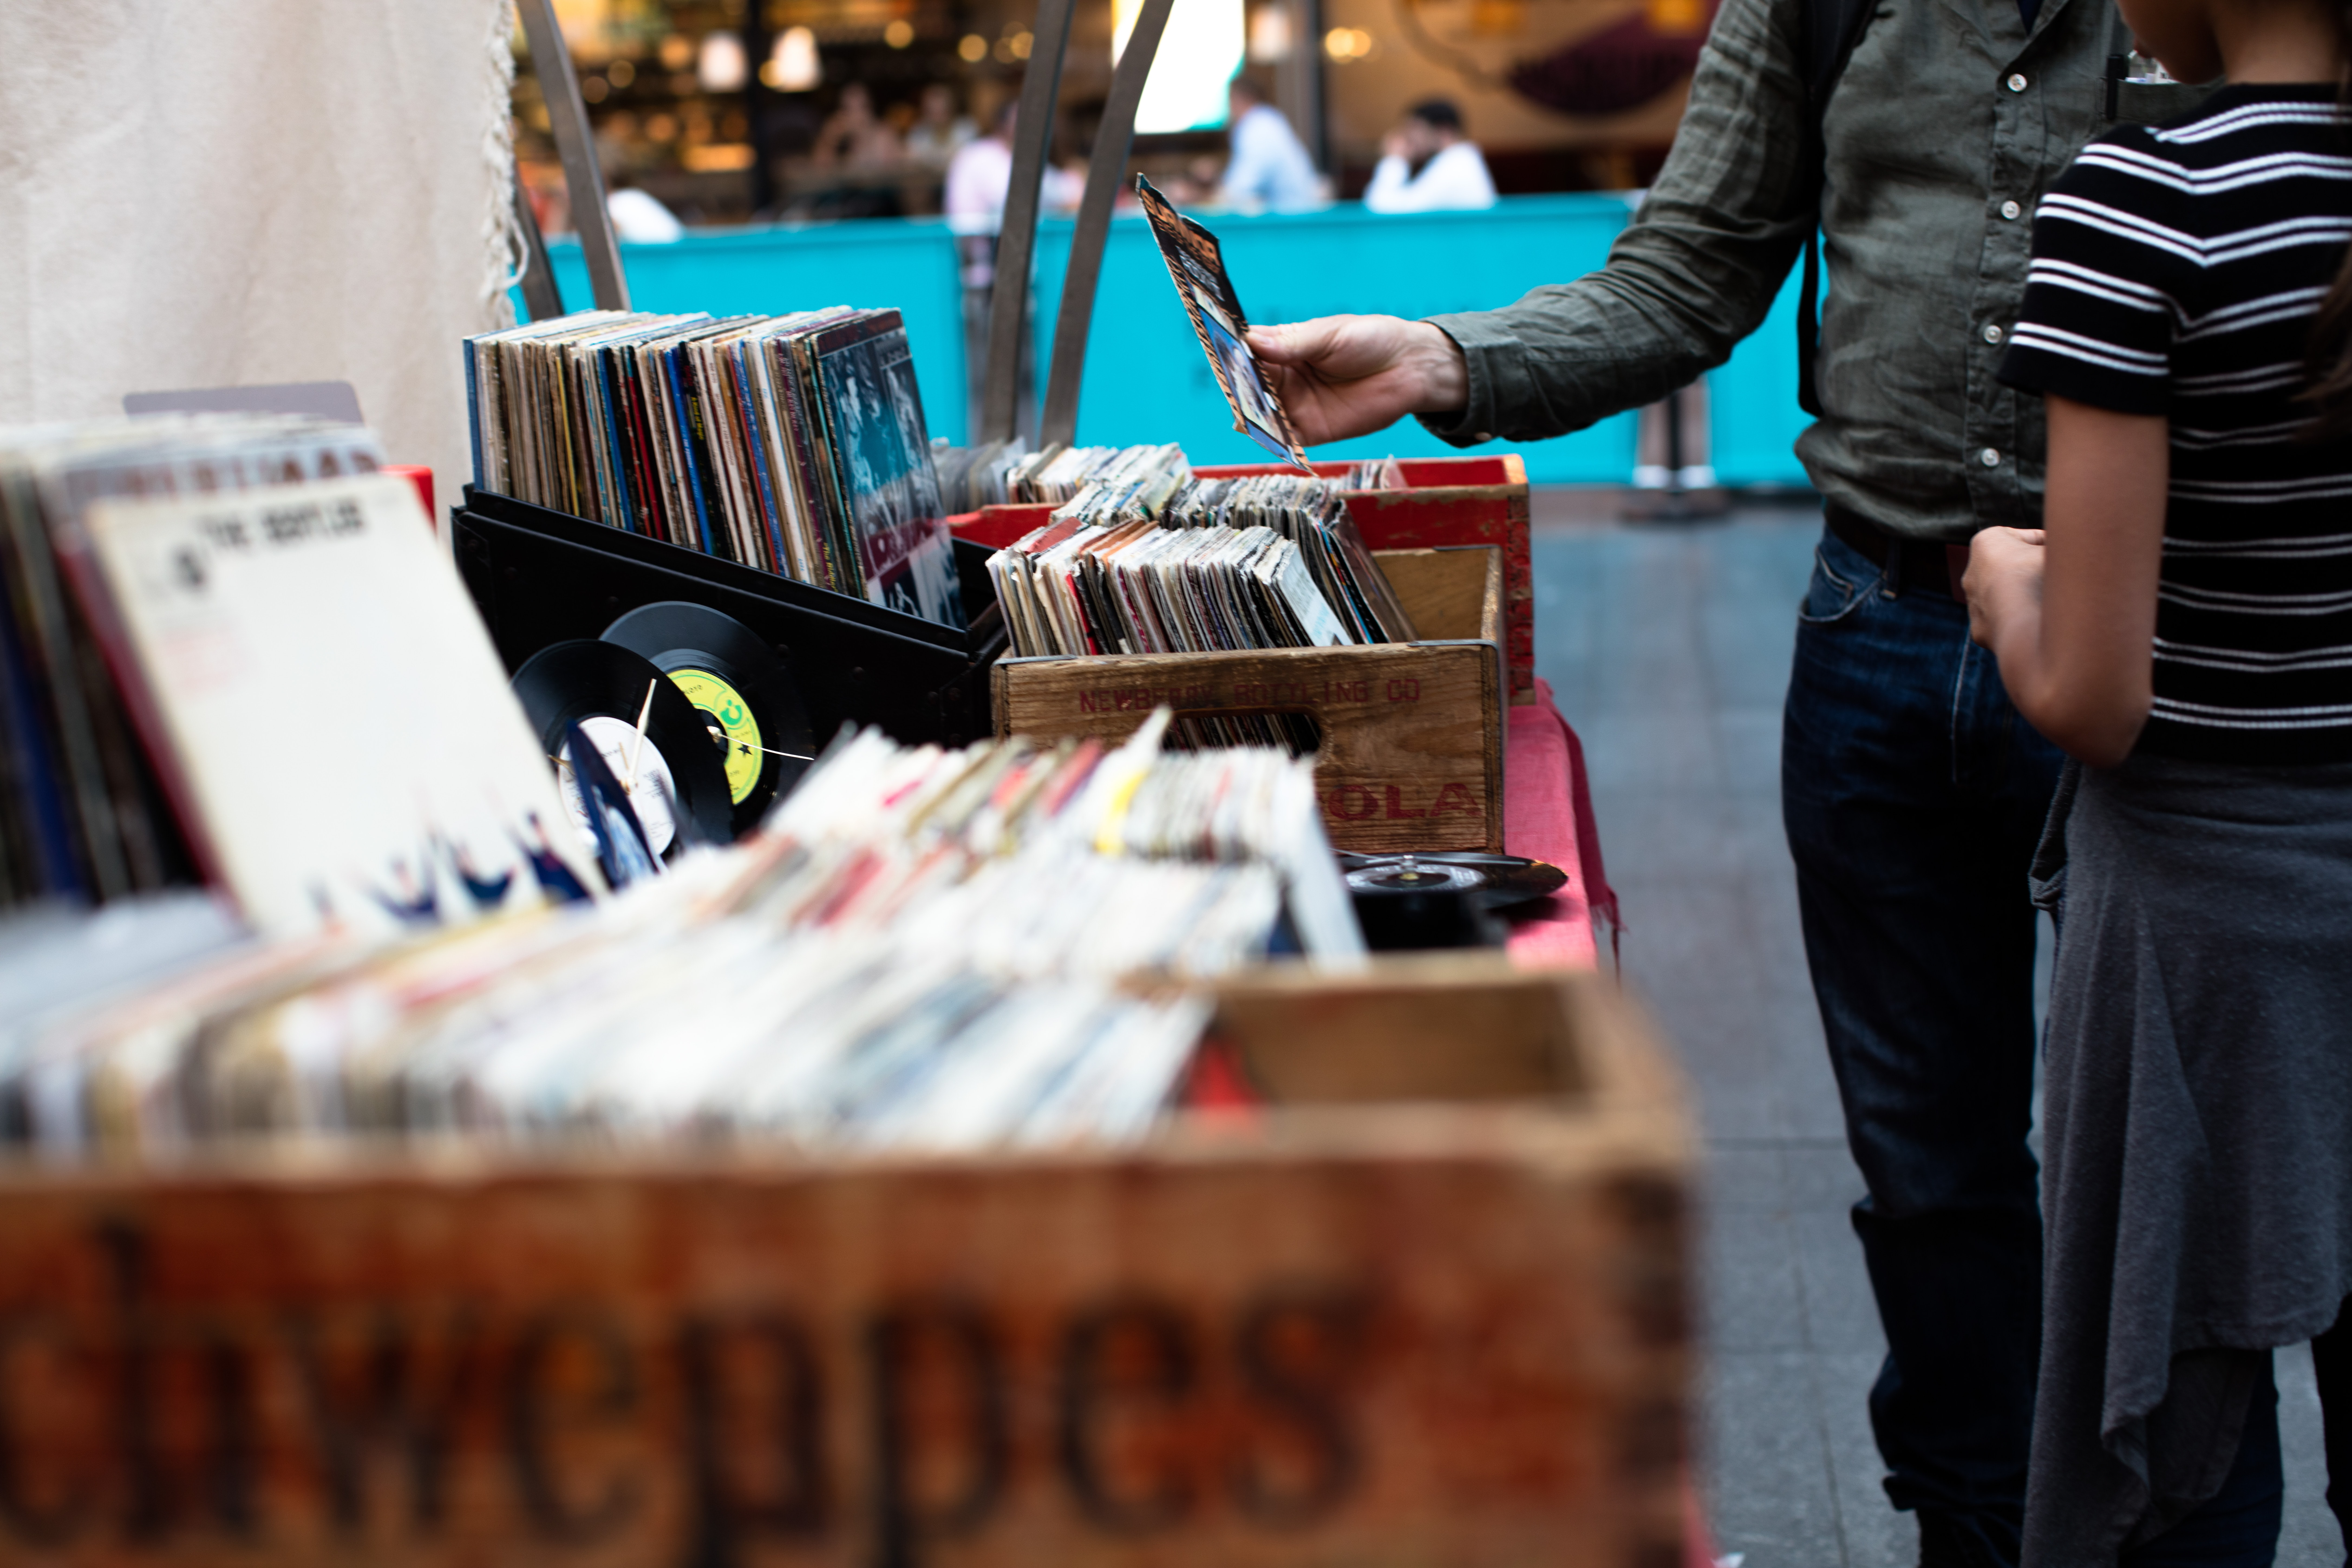 A man and a child browsing vinyl records from vintage boxes